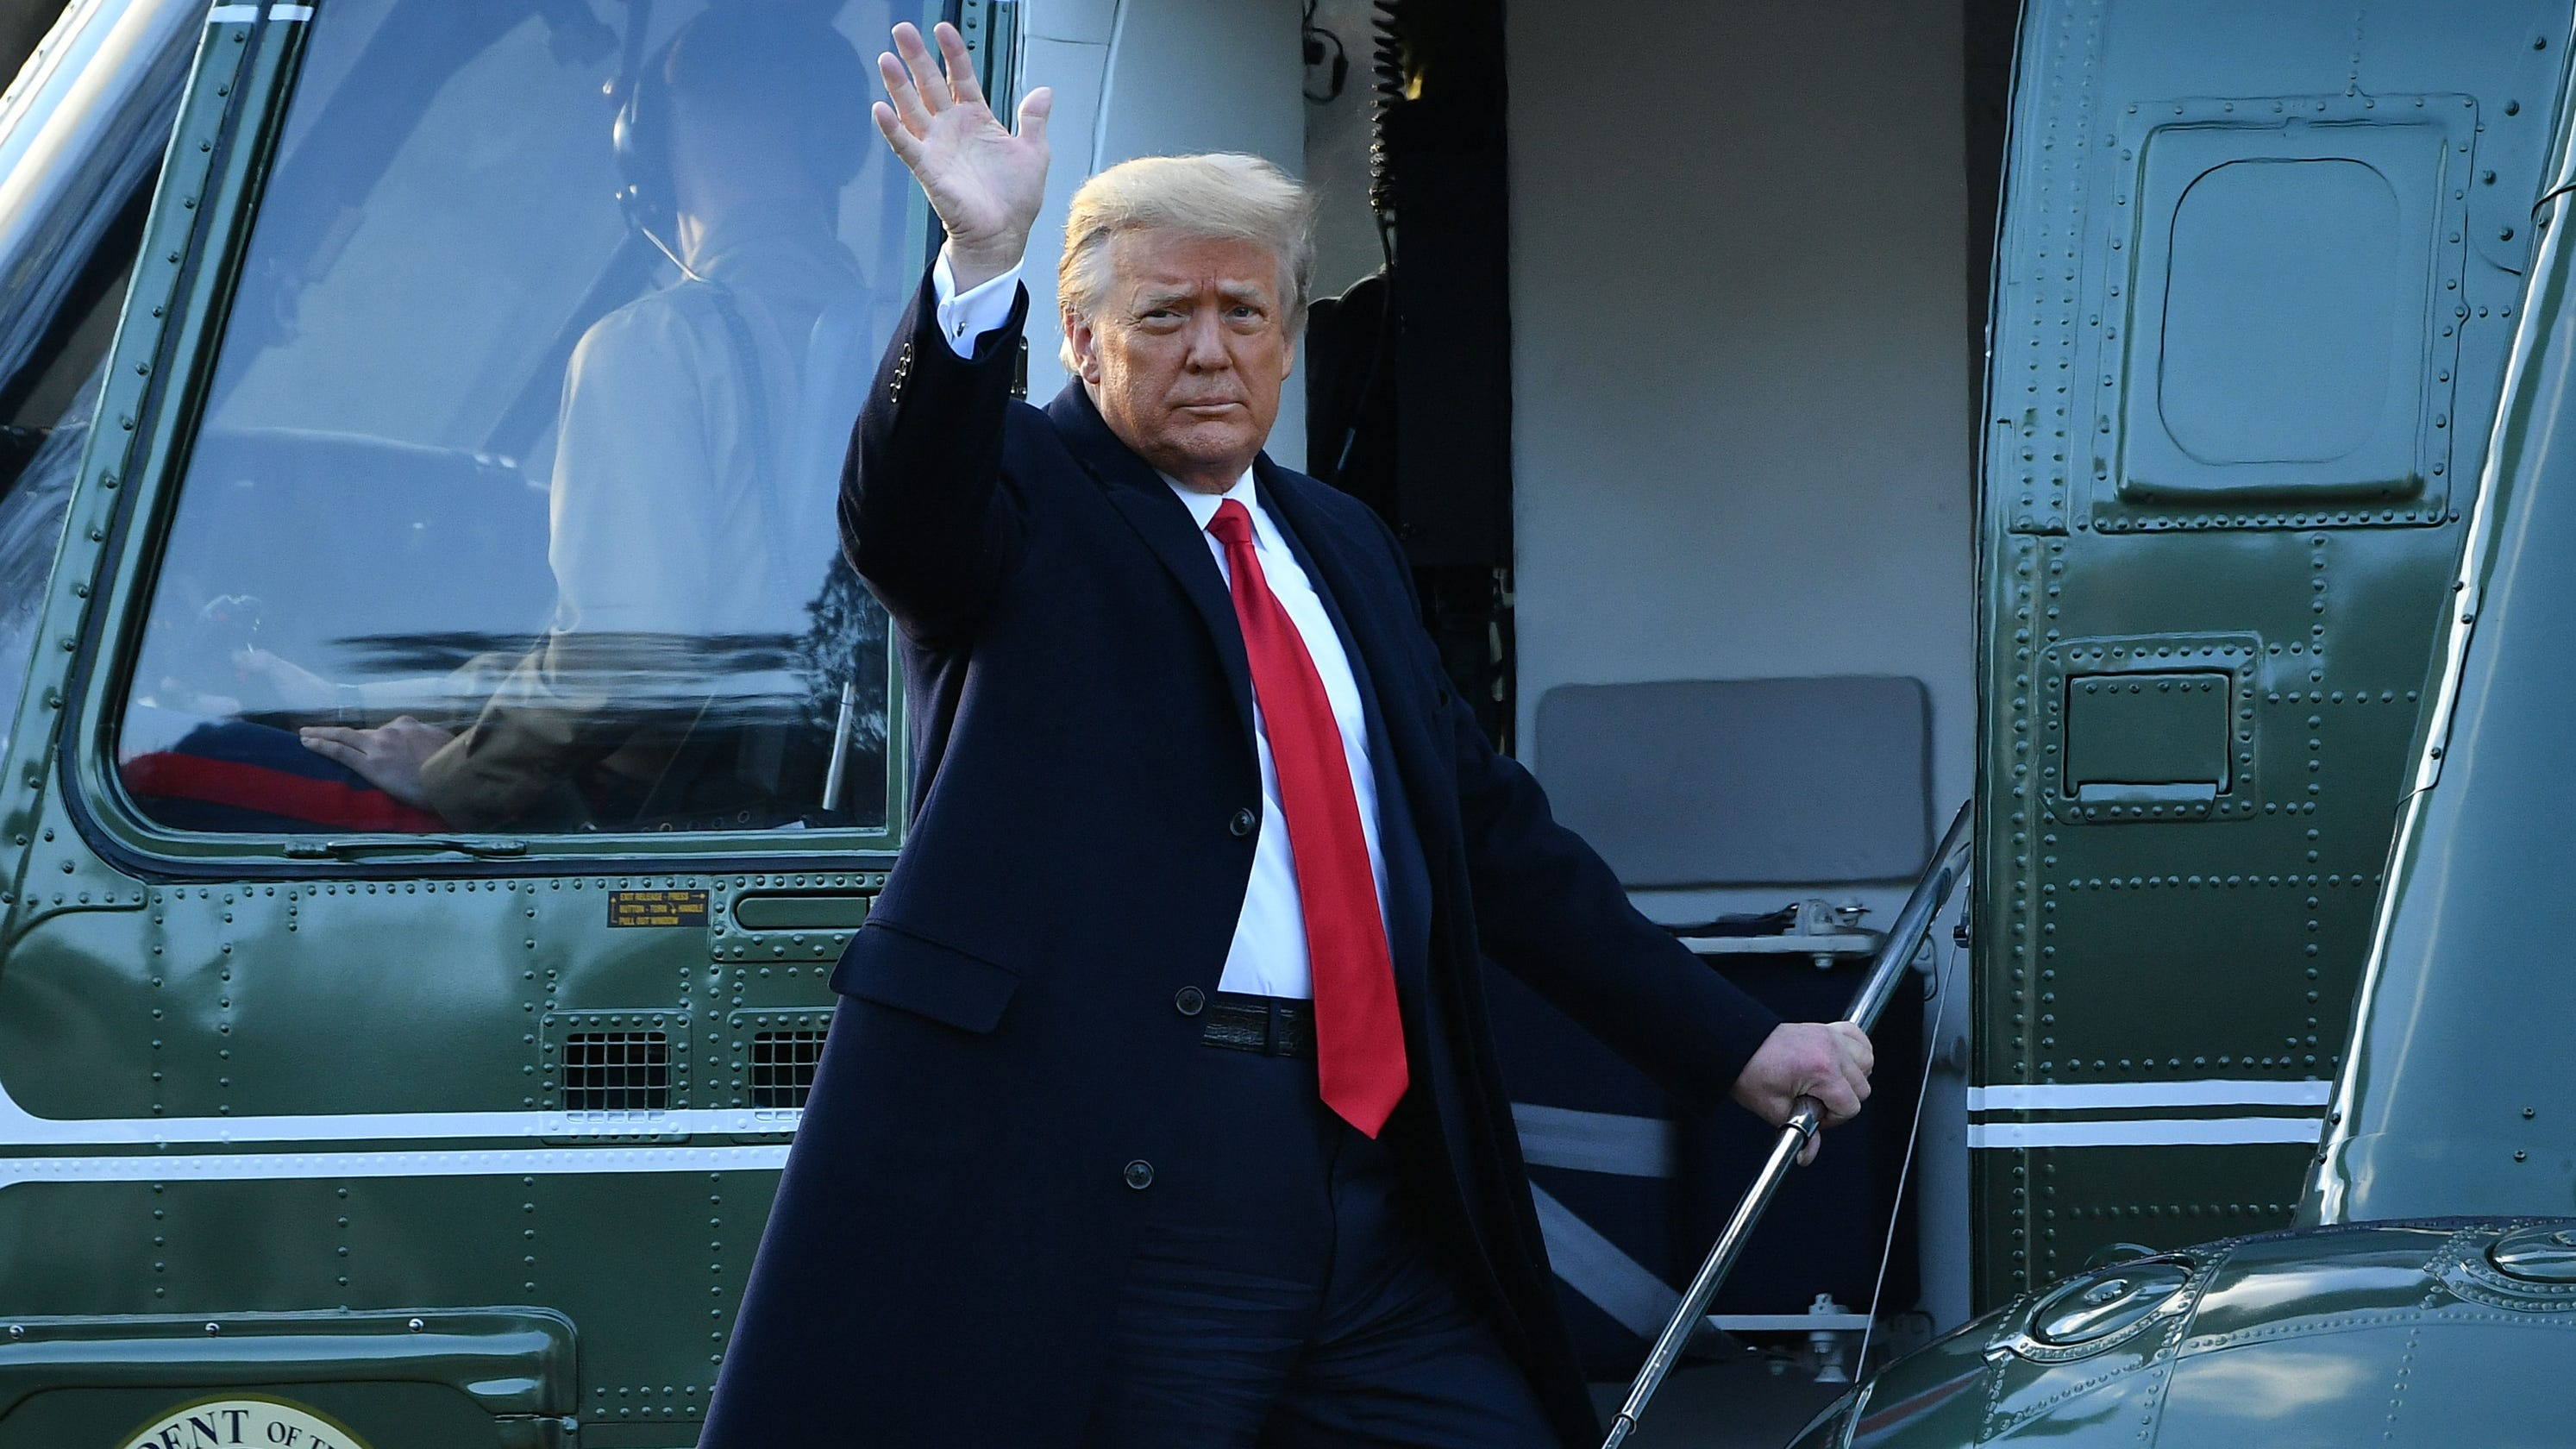 Donald Trump spends final minutes in office at Mar-a-Lago, is first president to skip inauguration in more than 150 years